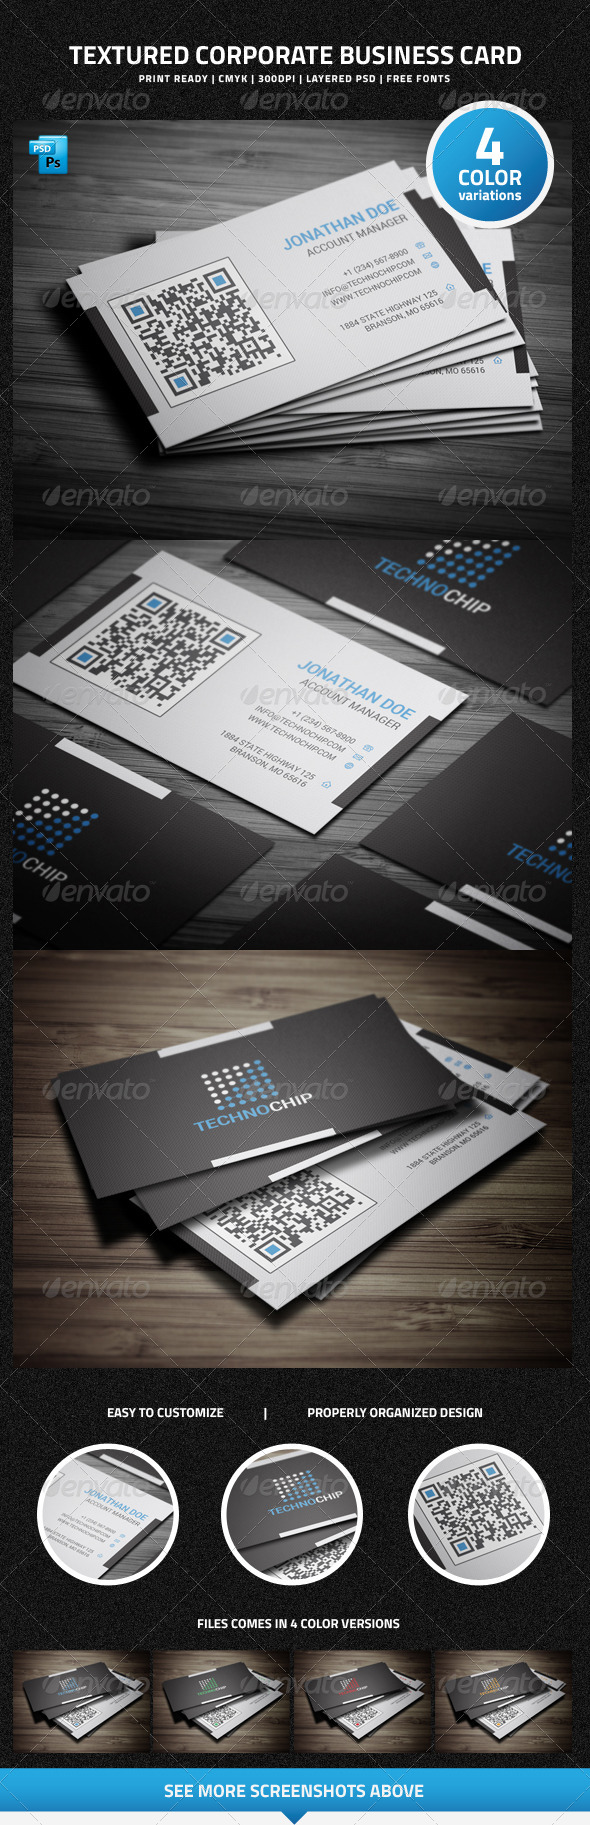 Textured Corporate Business Card - 19 - Corporate Business Cards